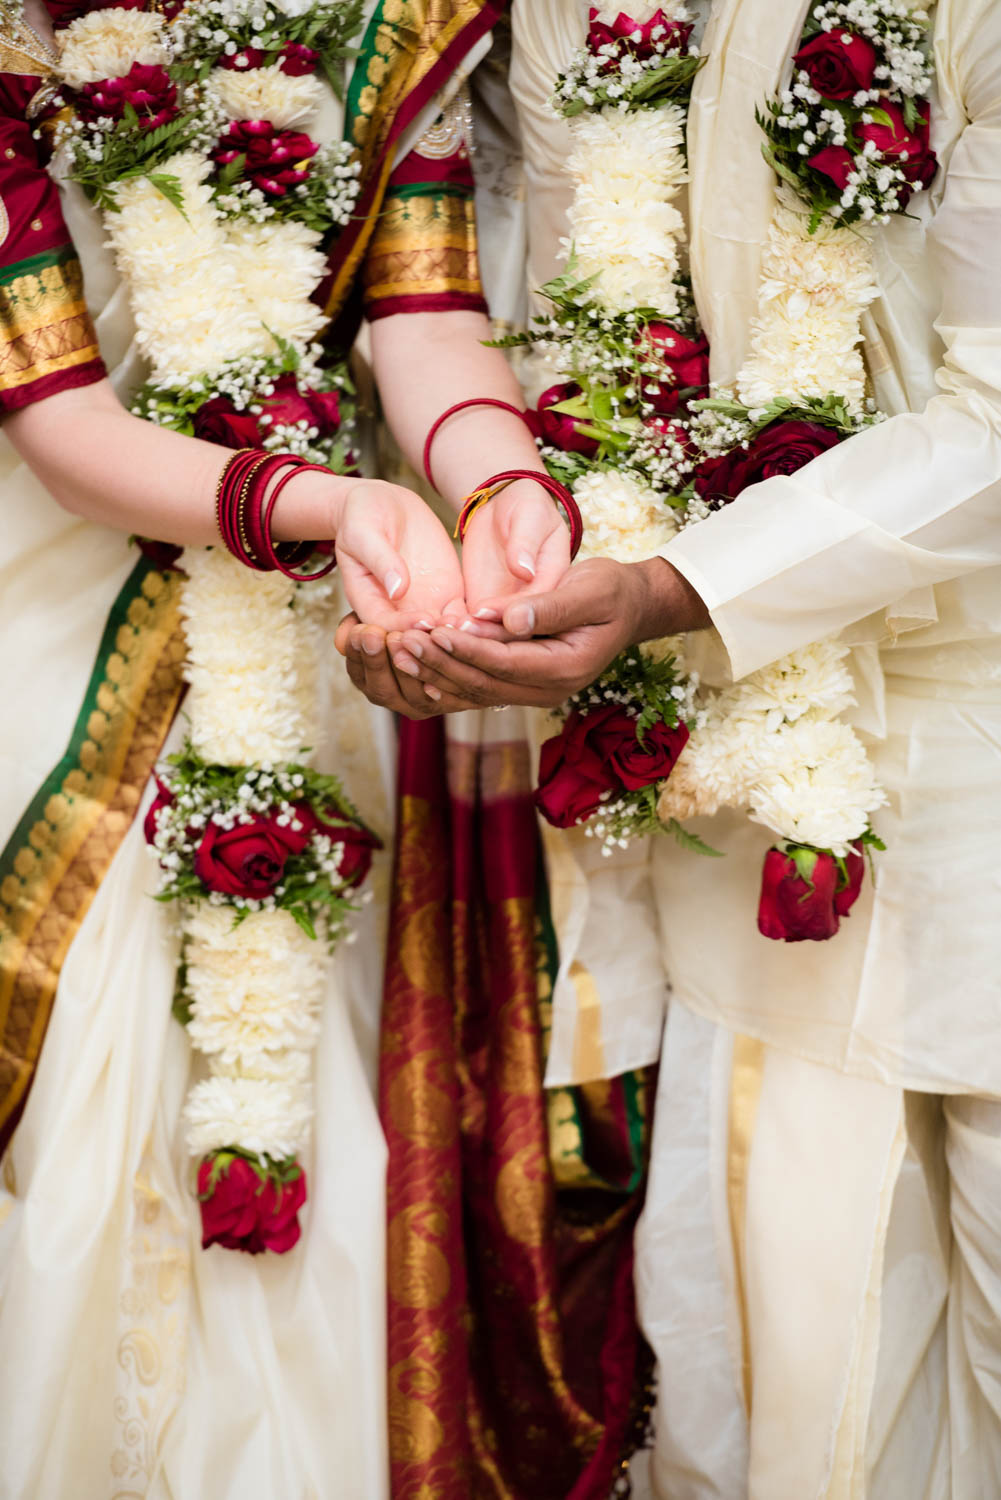 ecaterina-chandu-indian-wedding26.jpg